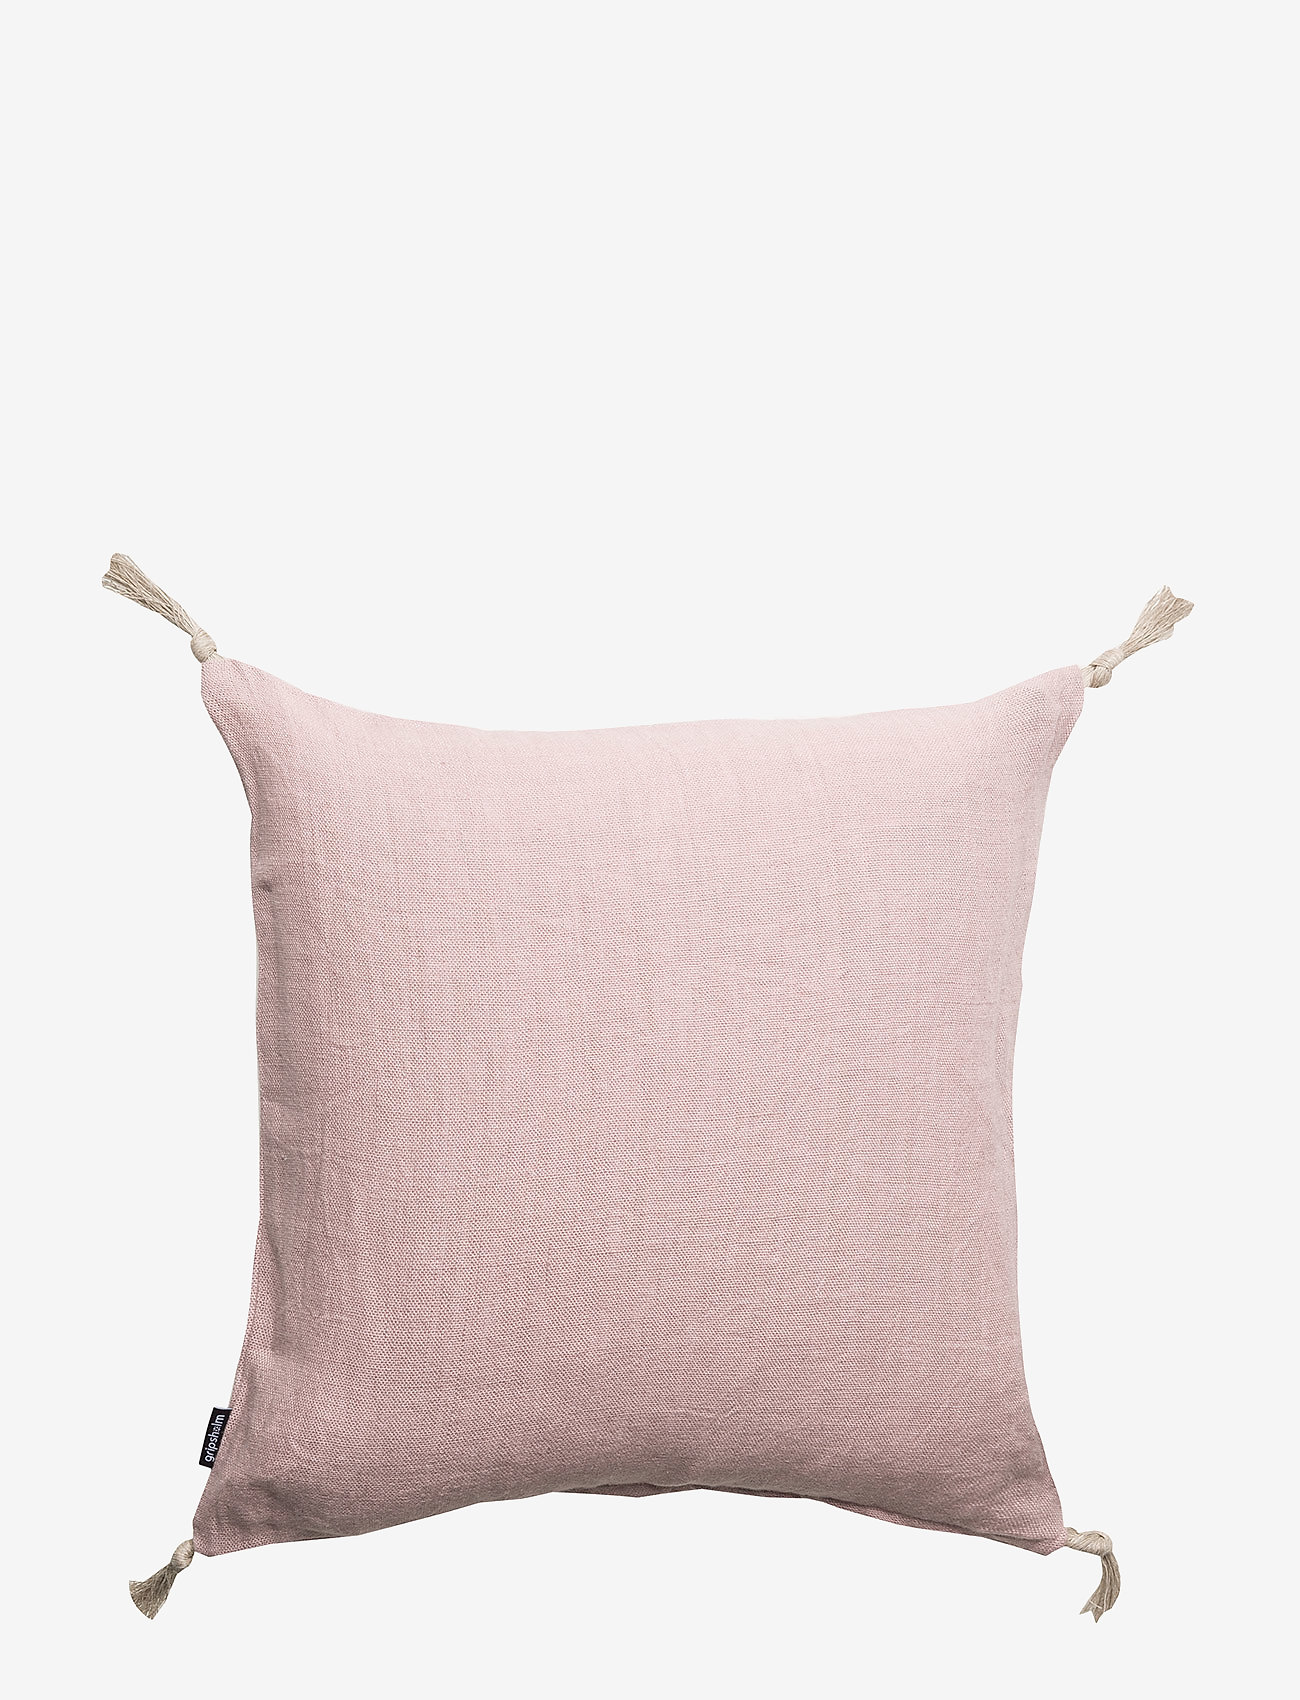 Gripsholm - CUSHION COVER - pillowcases - pink lilac - 1